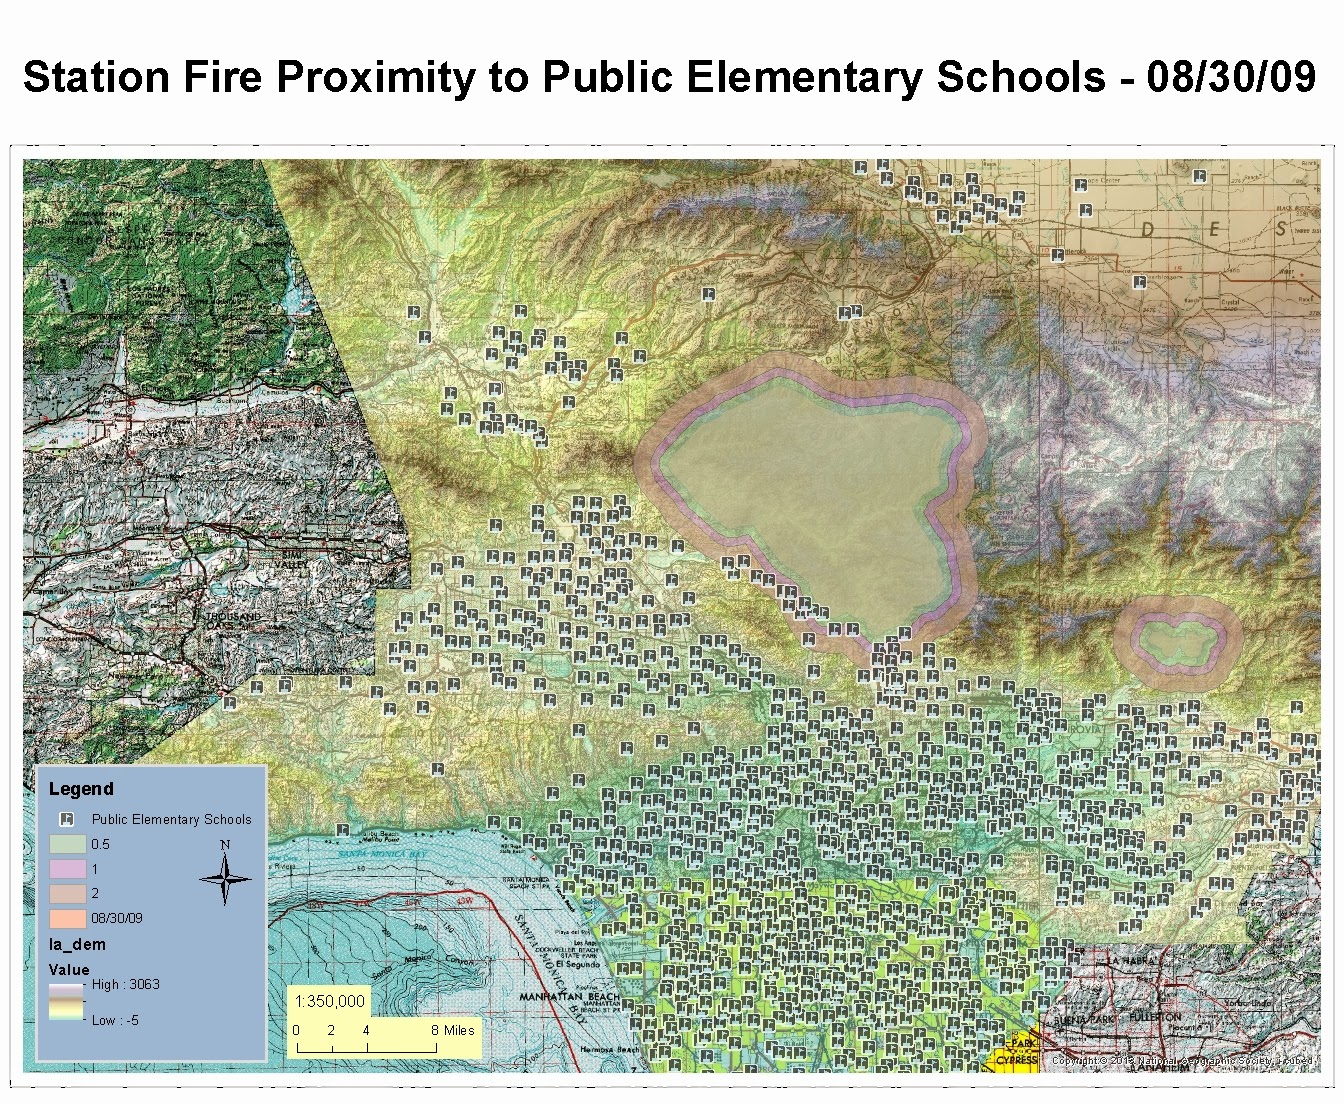 this was going to be the first map of a series detailing the air quality and air pollution associated with the station fire